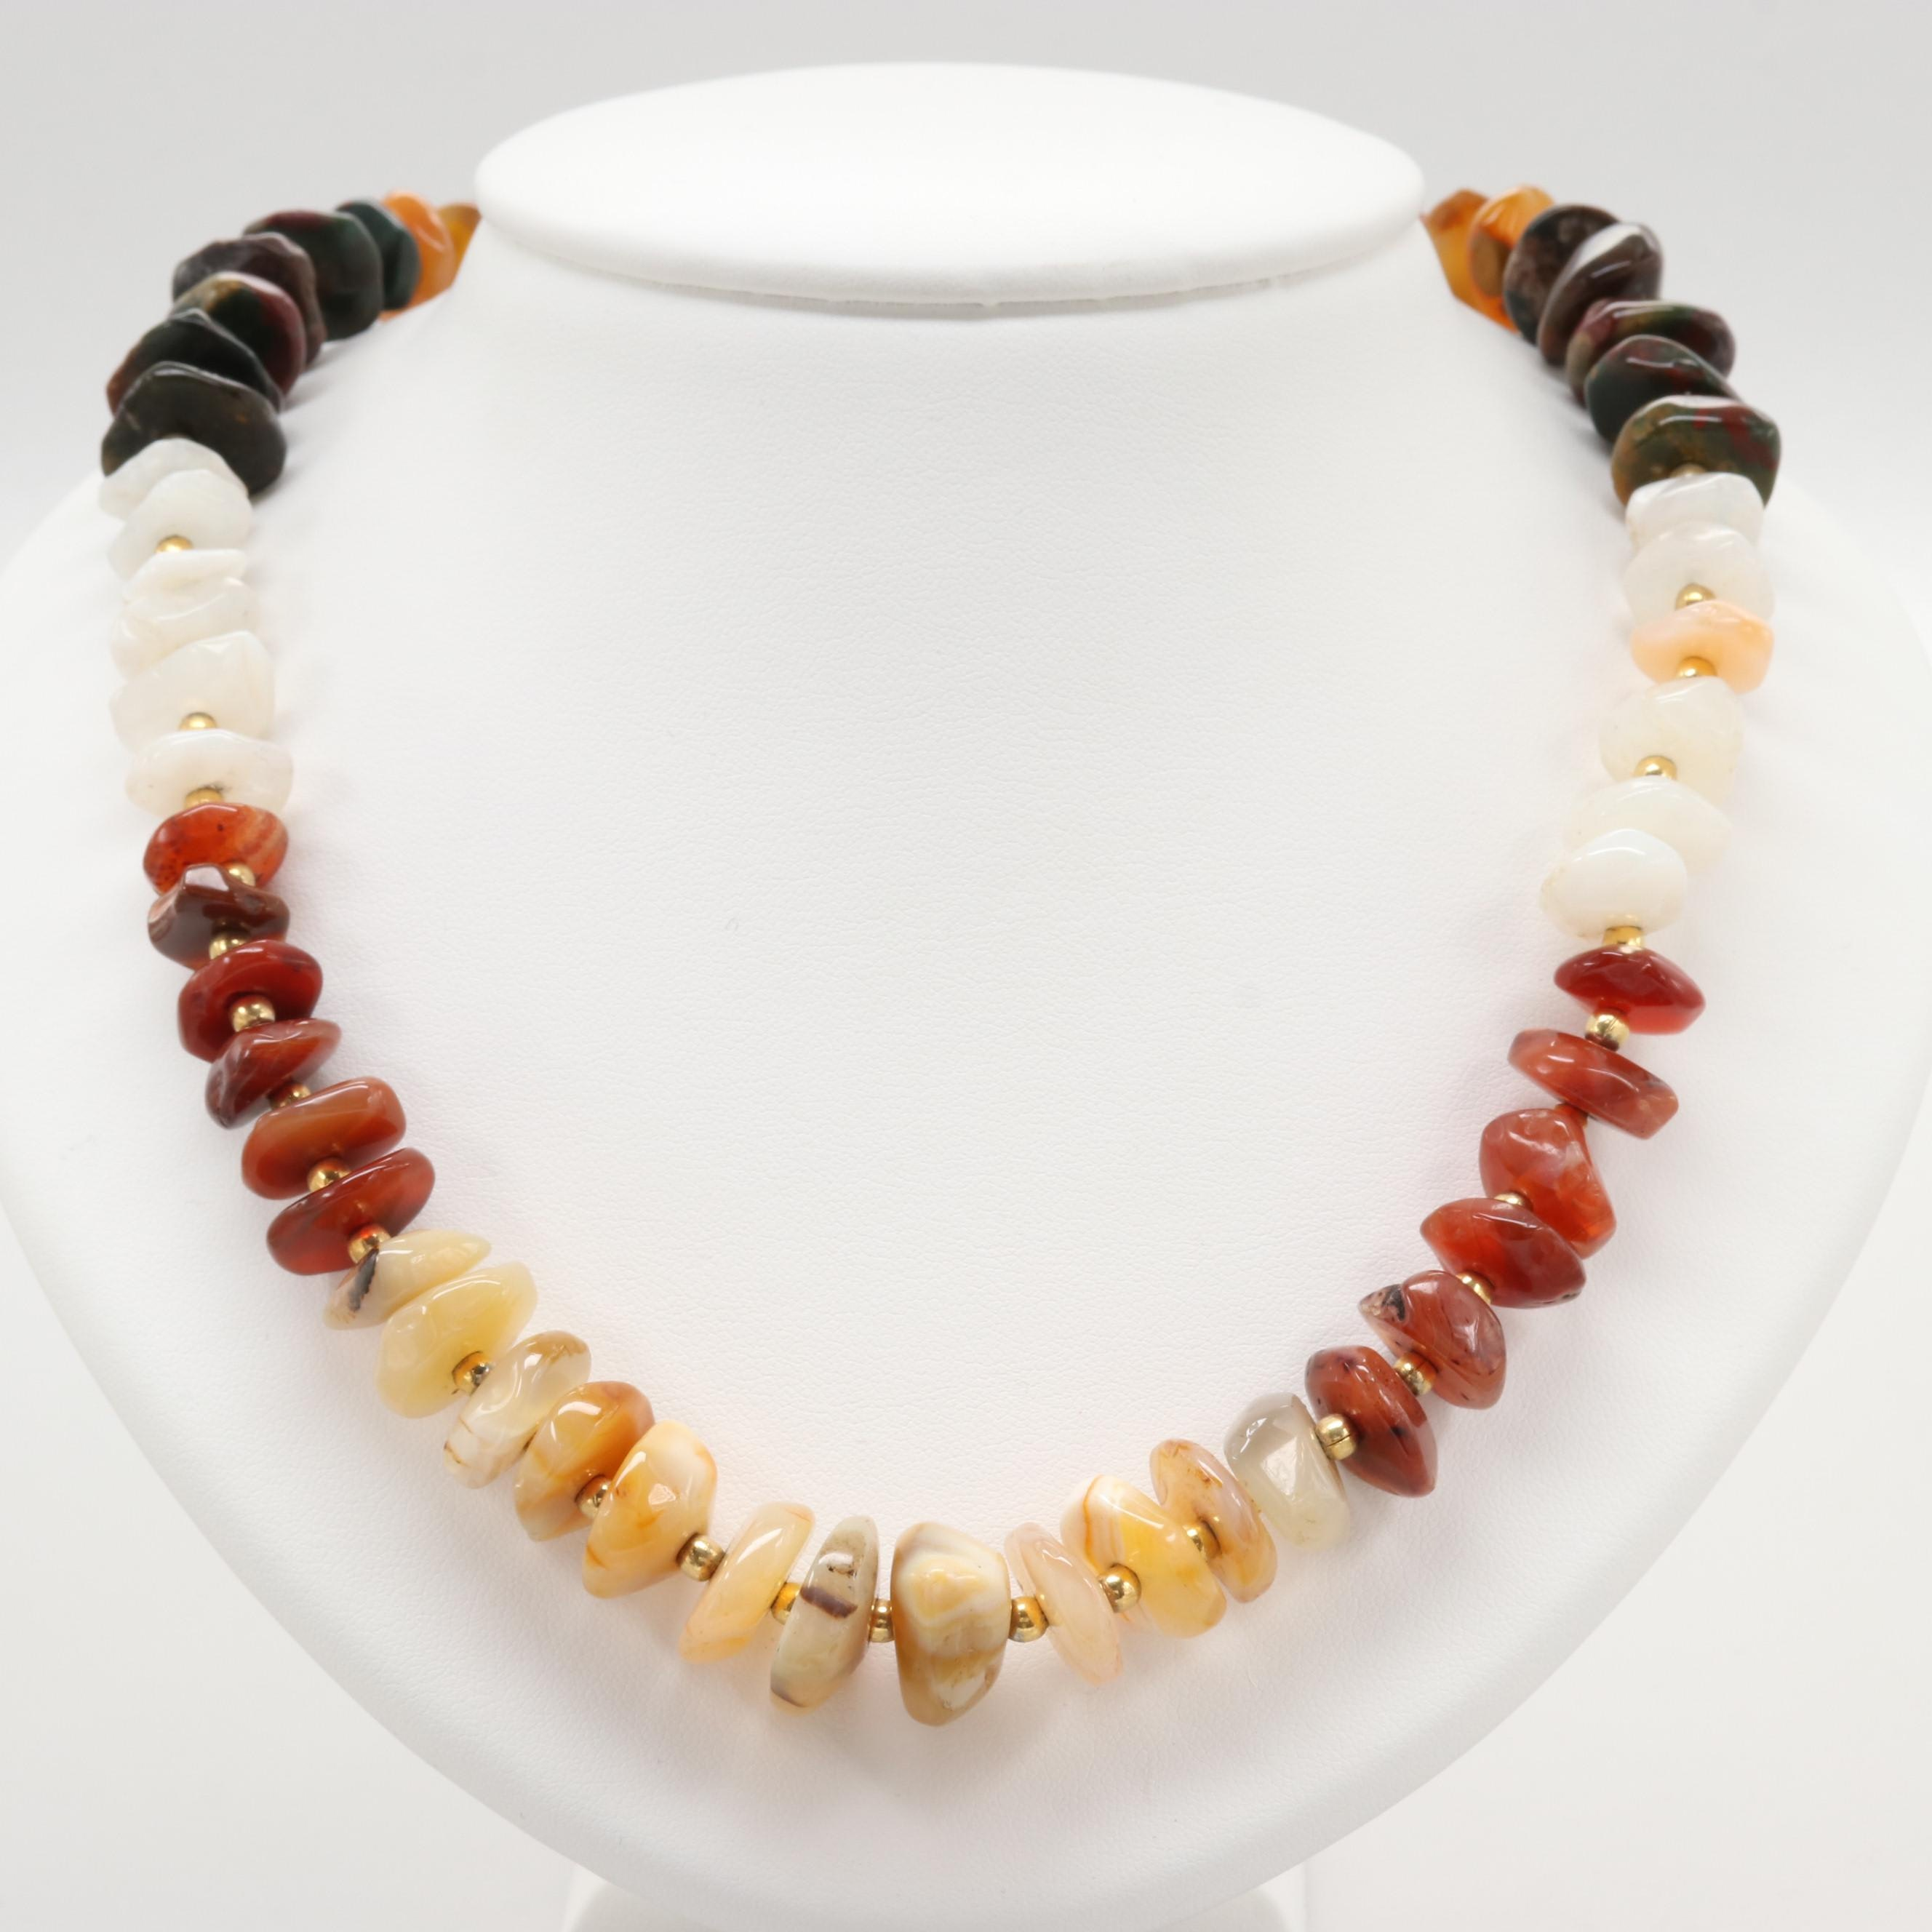 Gold Tone Amethyst, Agate and Unakite Necklace